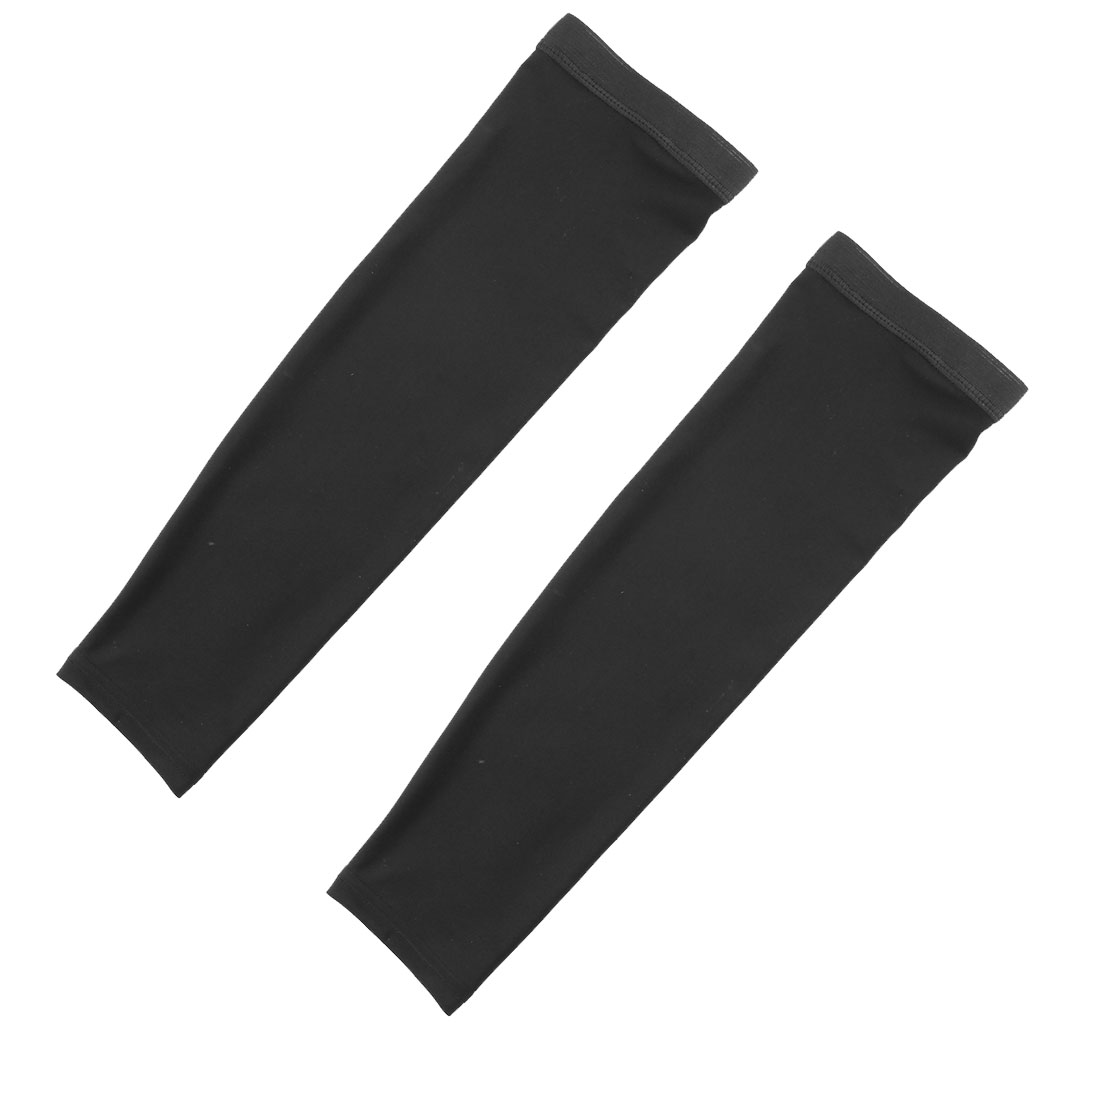 Outdoor Riding Polyester Anti-UV Stretchy Arm Sleeves Cover Protection Decor Black Size XXL Pair